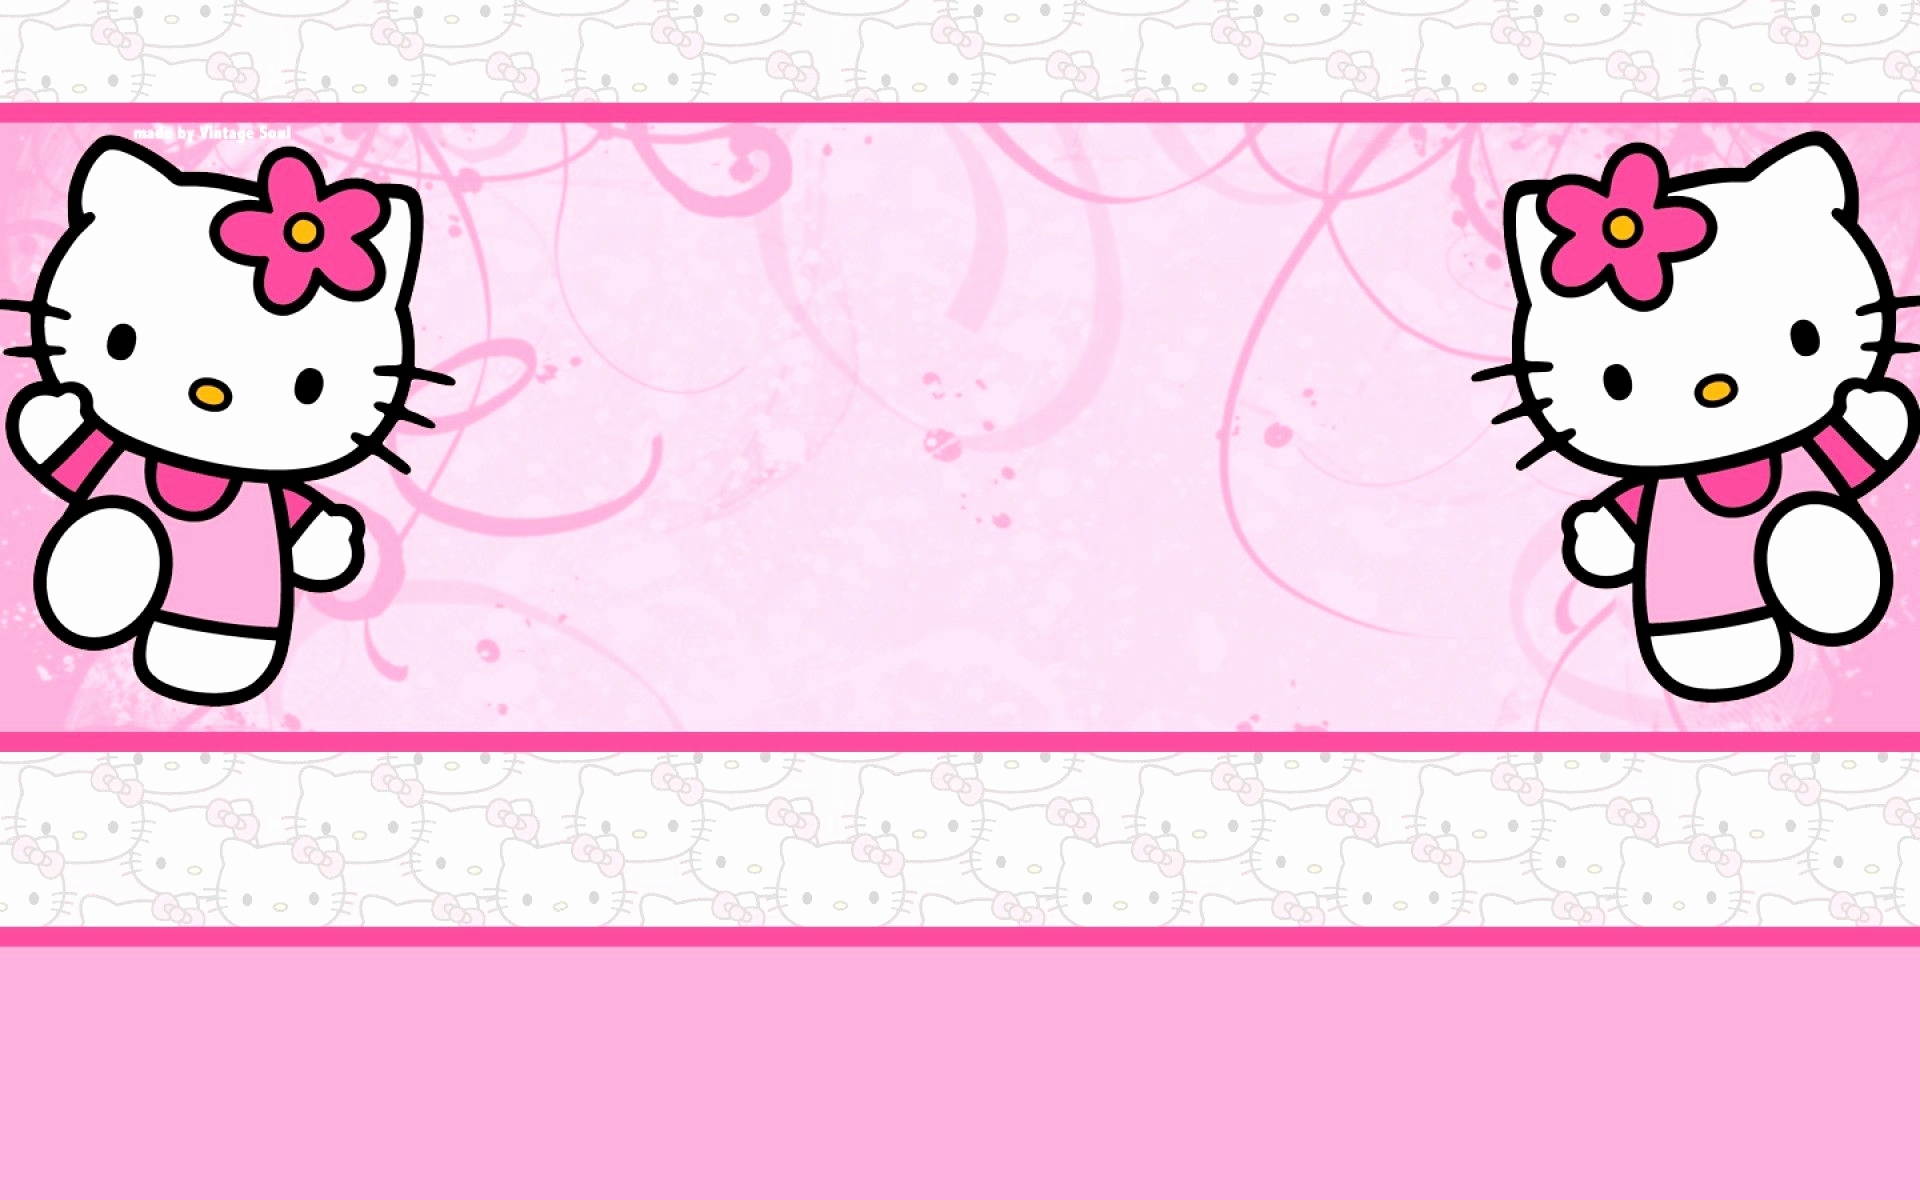 hello kitty birthday card ideas ; hello-kitty-birthday-card-printable-free-luxury-hello-kitty-birthday-cards-beautiful-hello-kitty-birthday-card-for-of-hello-kitty-birthday-card-printable-free